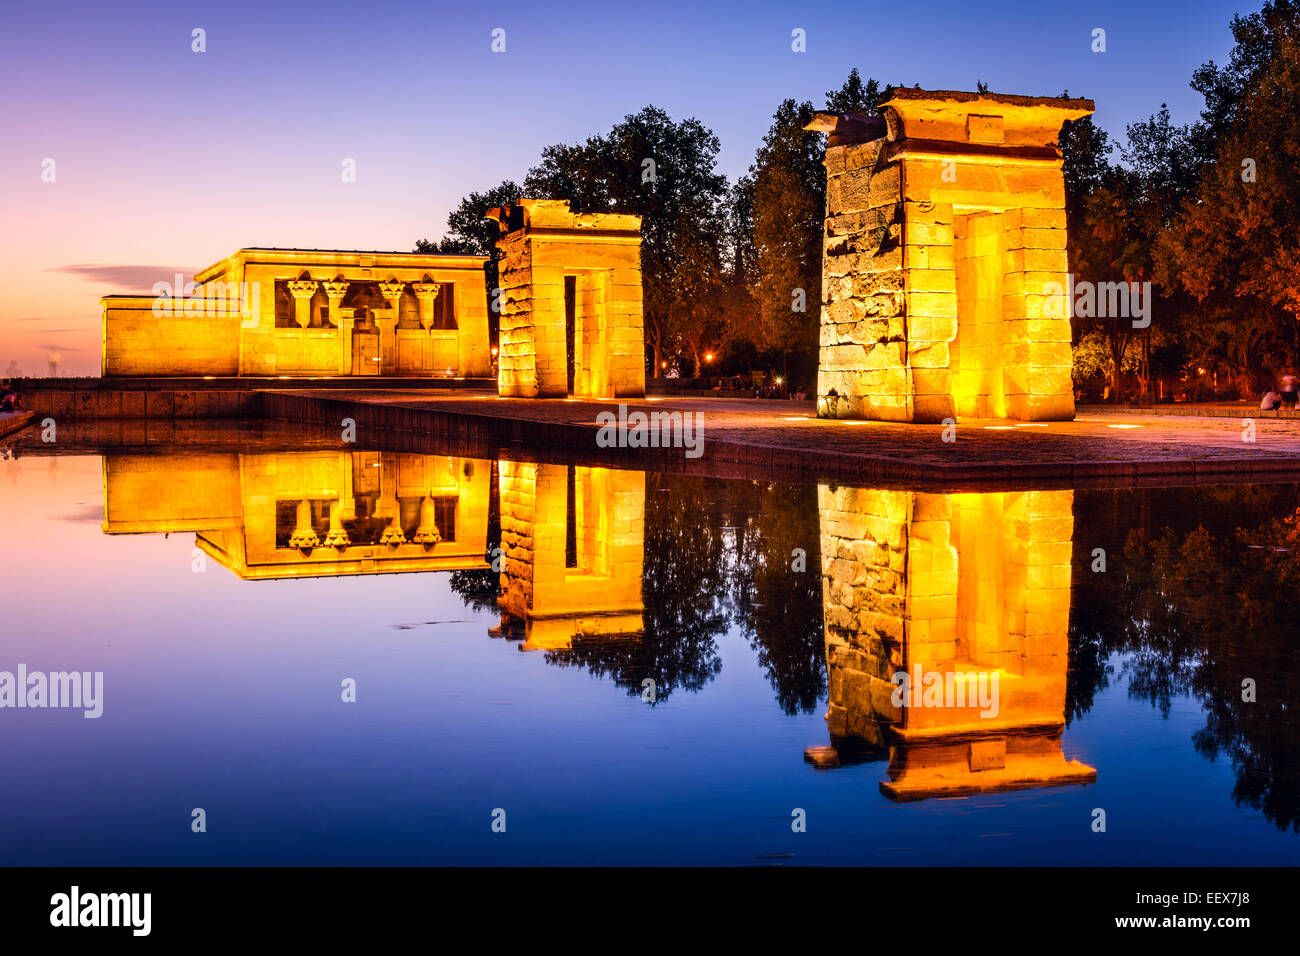 Madrid, Spain at the ancient Egyptian ruins of Temple Debod. - Stock Image